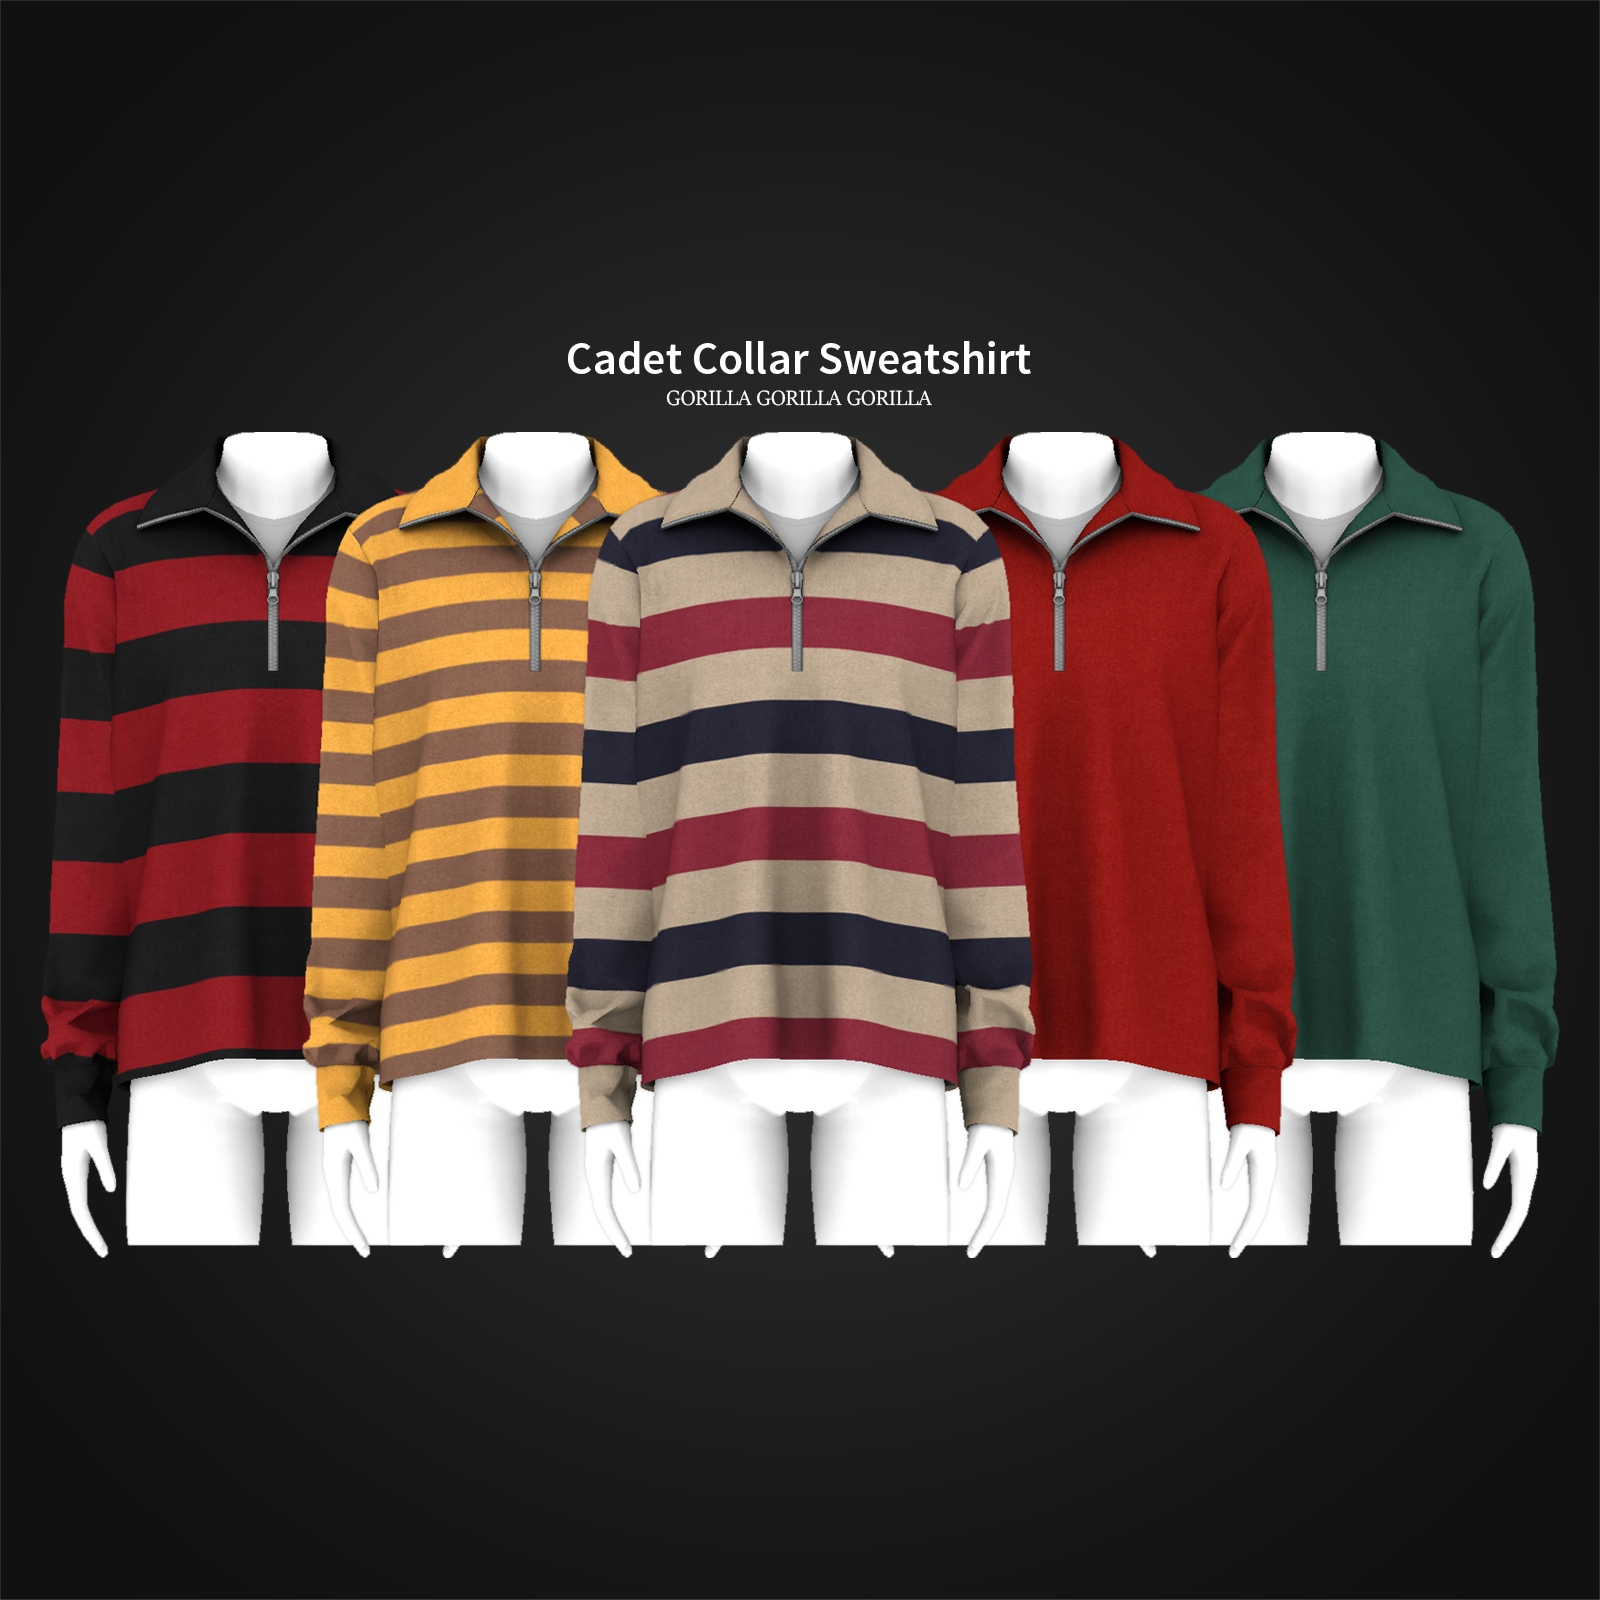 Cadet Collar Sweatshirt by Gorilla